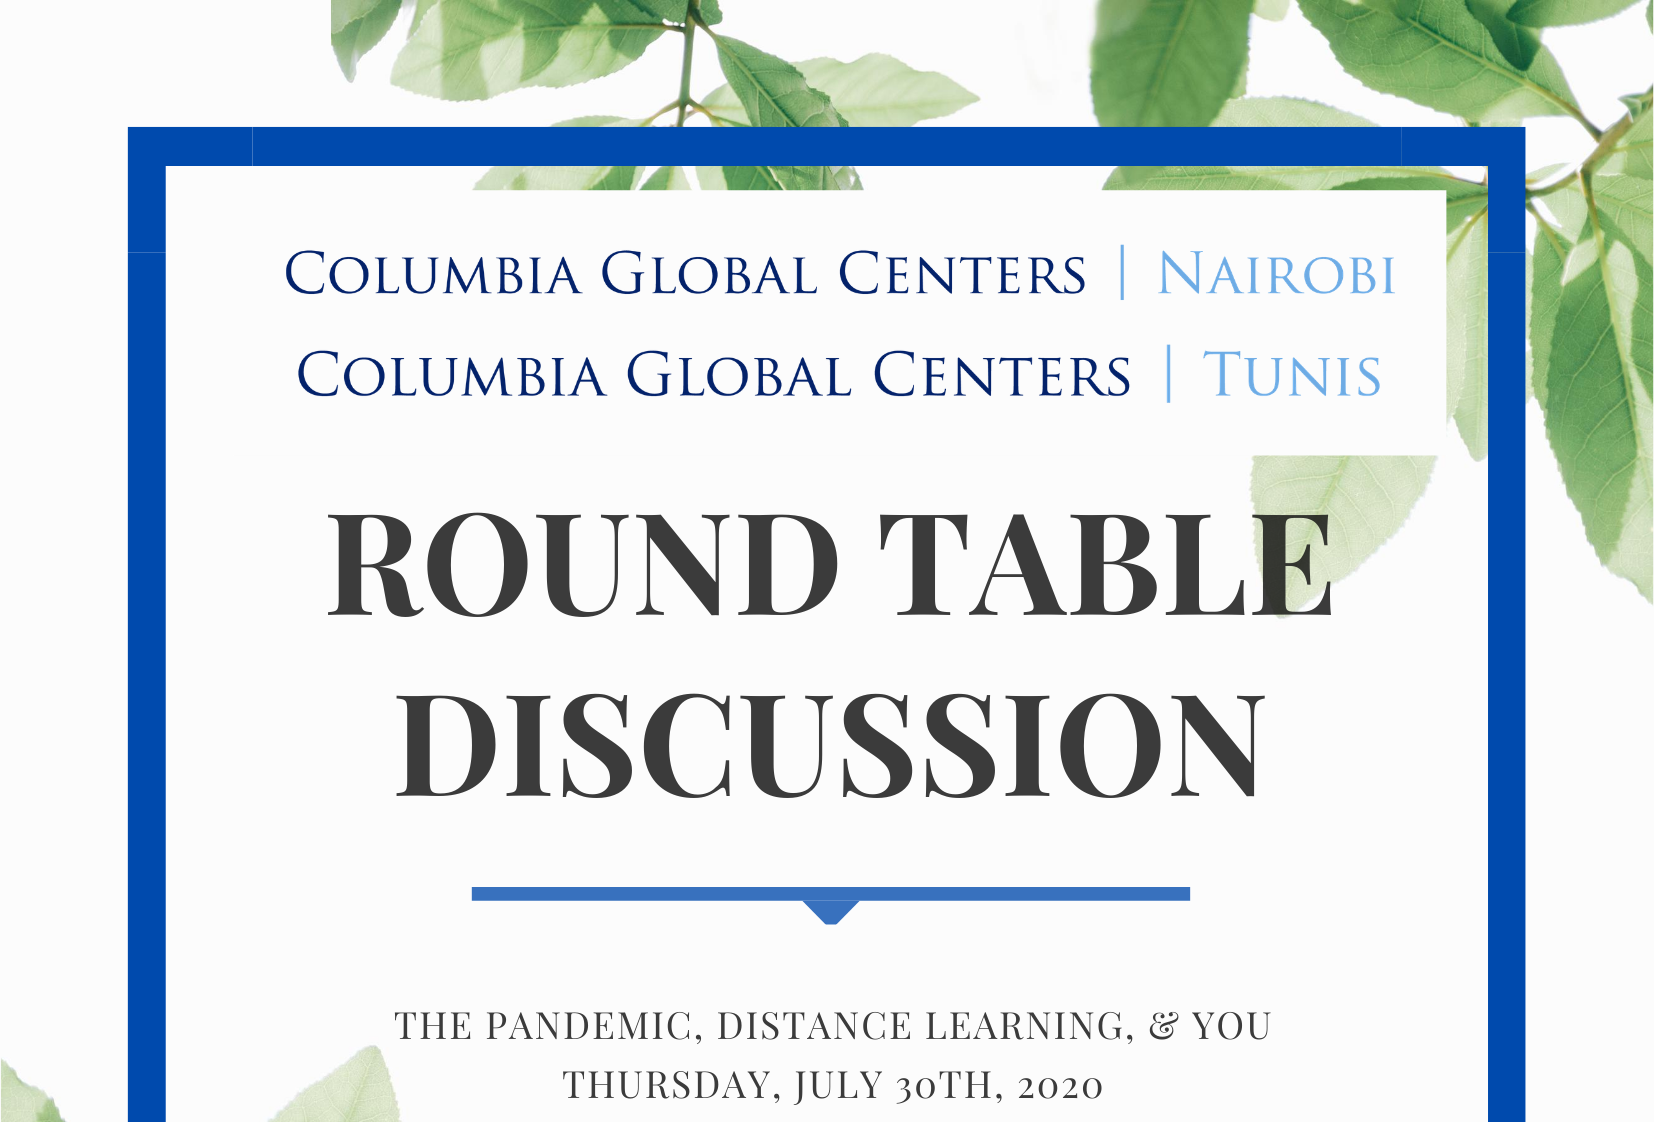 Columbia Global Centers | Tunis and Nairobi Hosted Virtual Discussion on COVID-19